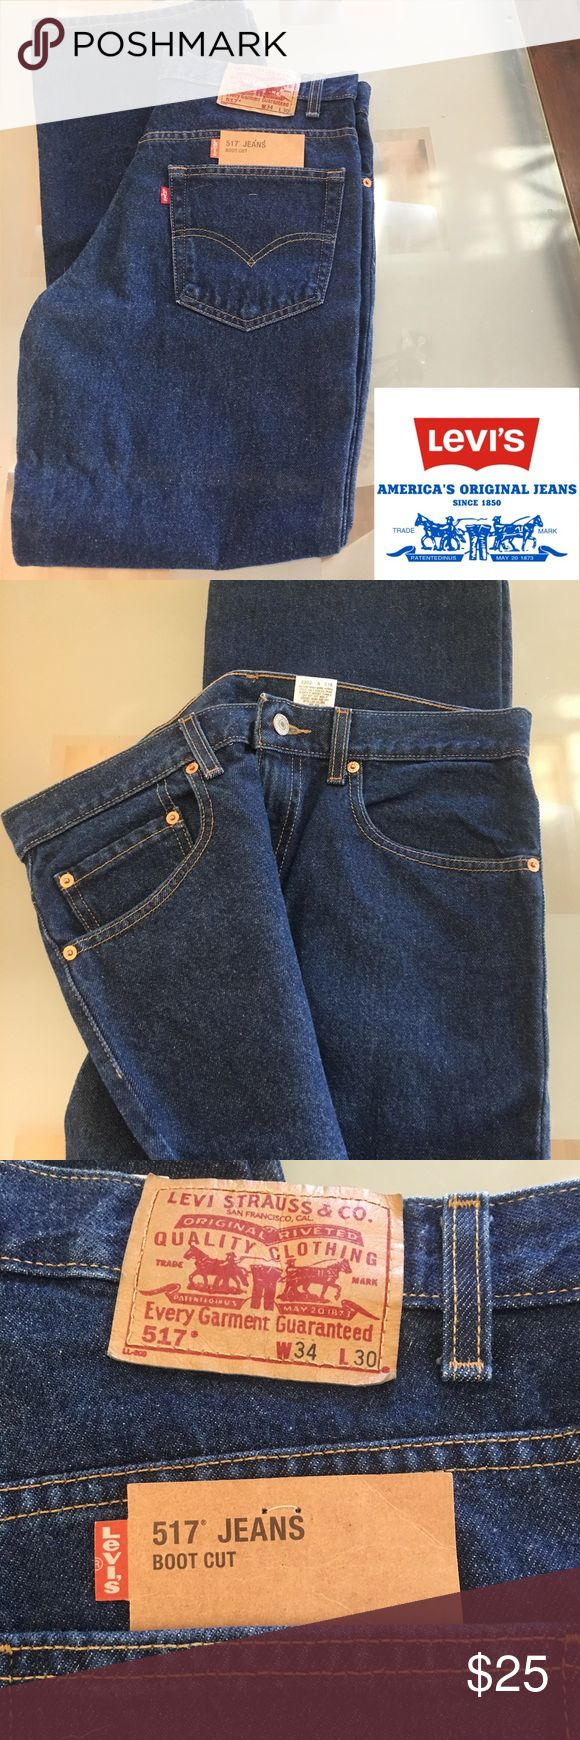 NWT Men's Levi's 517 Dark Wash Denim Jeans Regular Midrise 5 pocket boot cut jeans. Iconic Levi's Jeans that is loved by all from presidents movie stars farmers to everyday man. Sz 34x30 NWT Levi's Jeans Bootcut